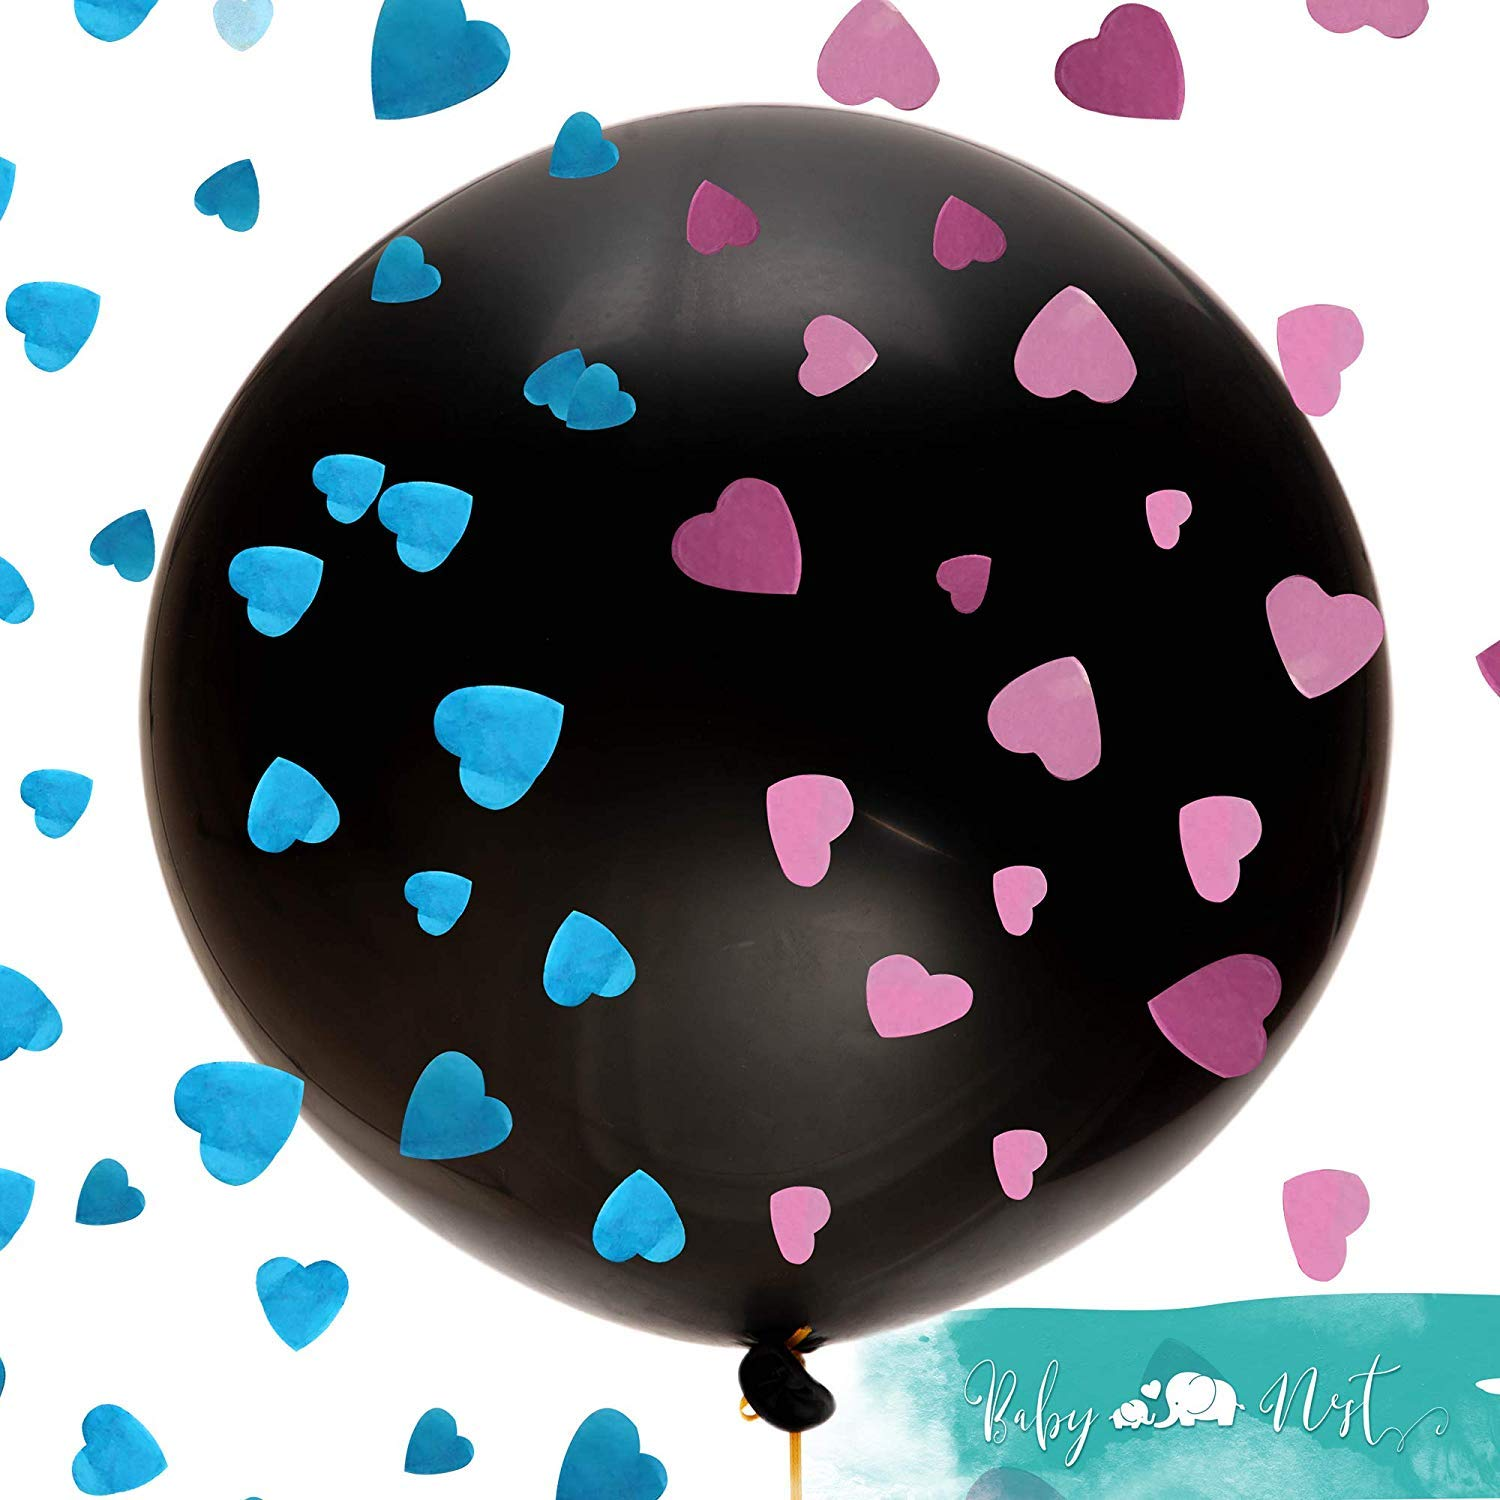 Cupcake Toppers Foil and Confetti Balloons With The Original Gender Reveal Balloon Boy or Girl Banner Decorations KASU Gender Reveal Party Supplies - 103 Pieces Stickers Photo Props